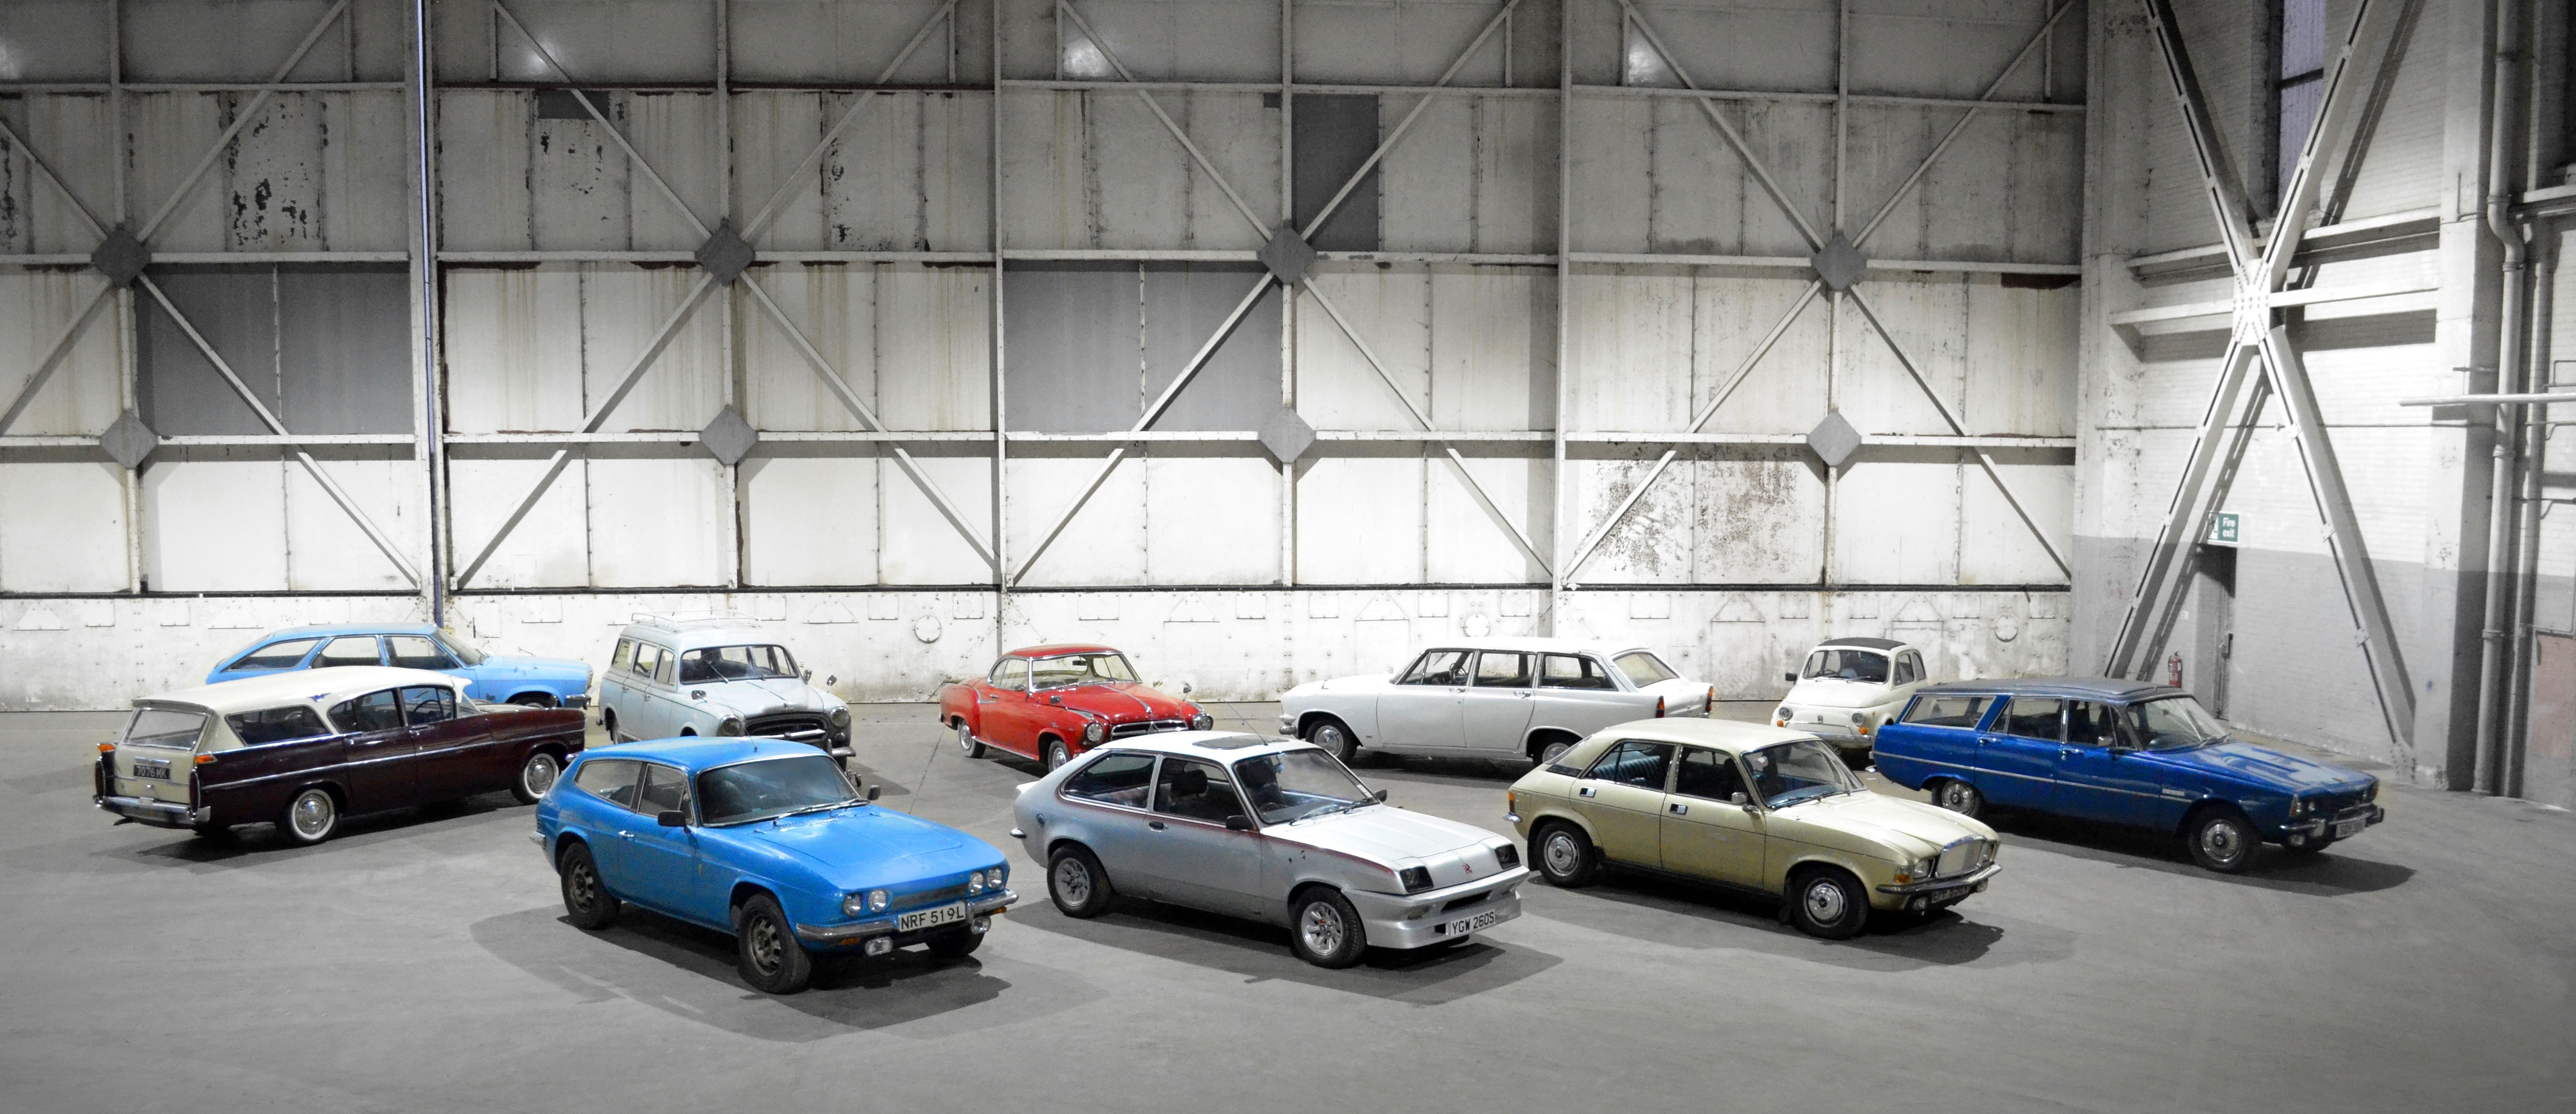 Jaguar Land Rover sending more than 100 classics to auction